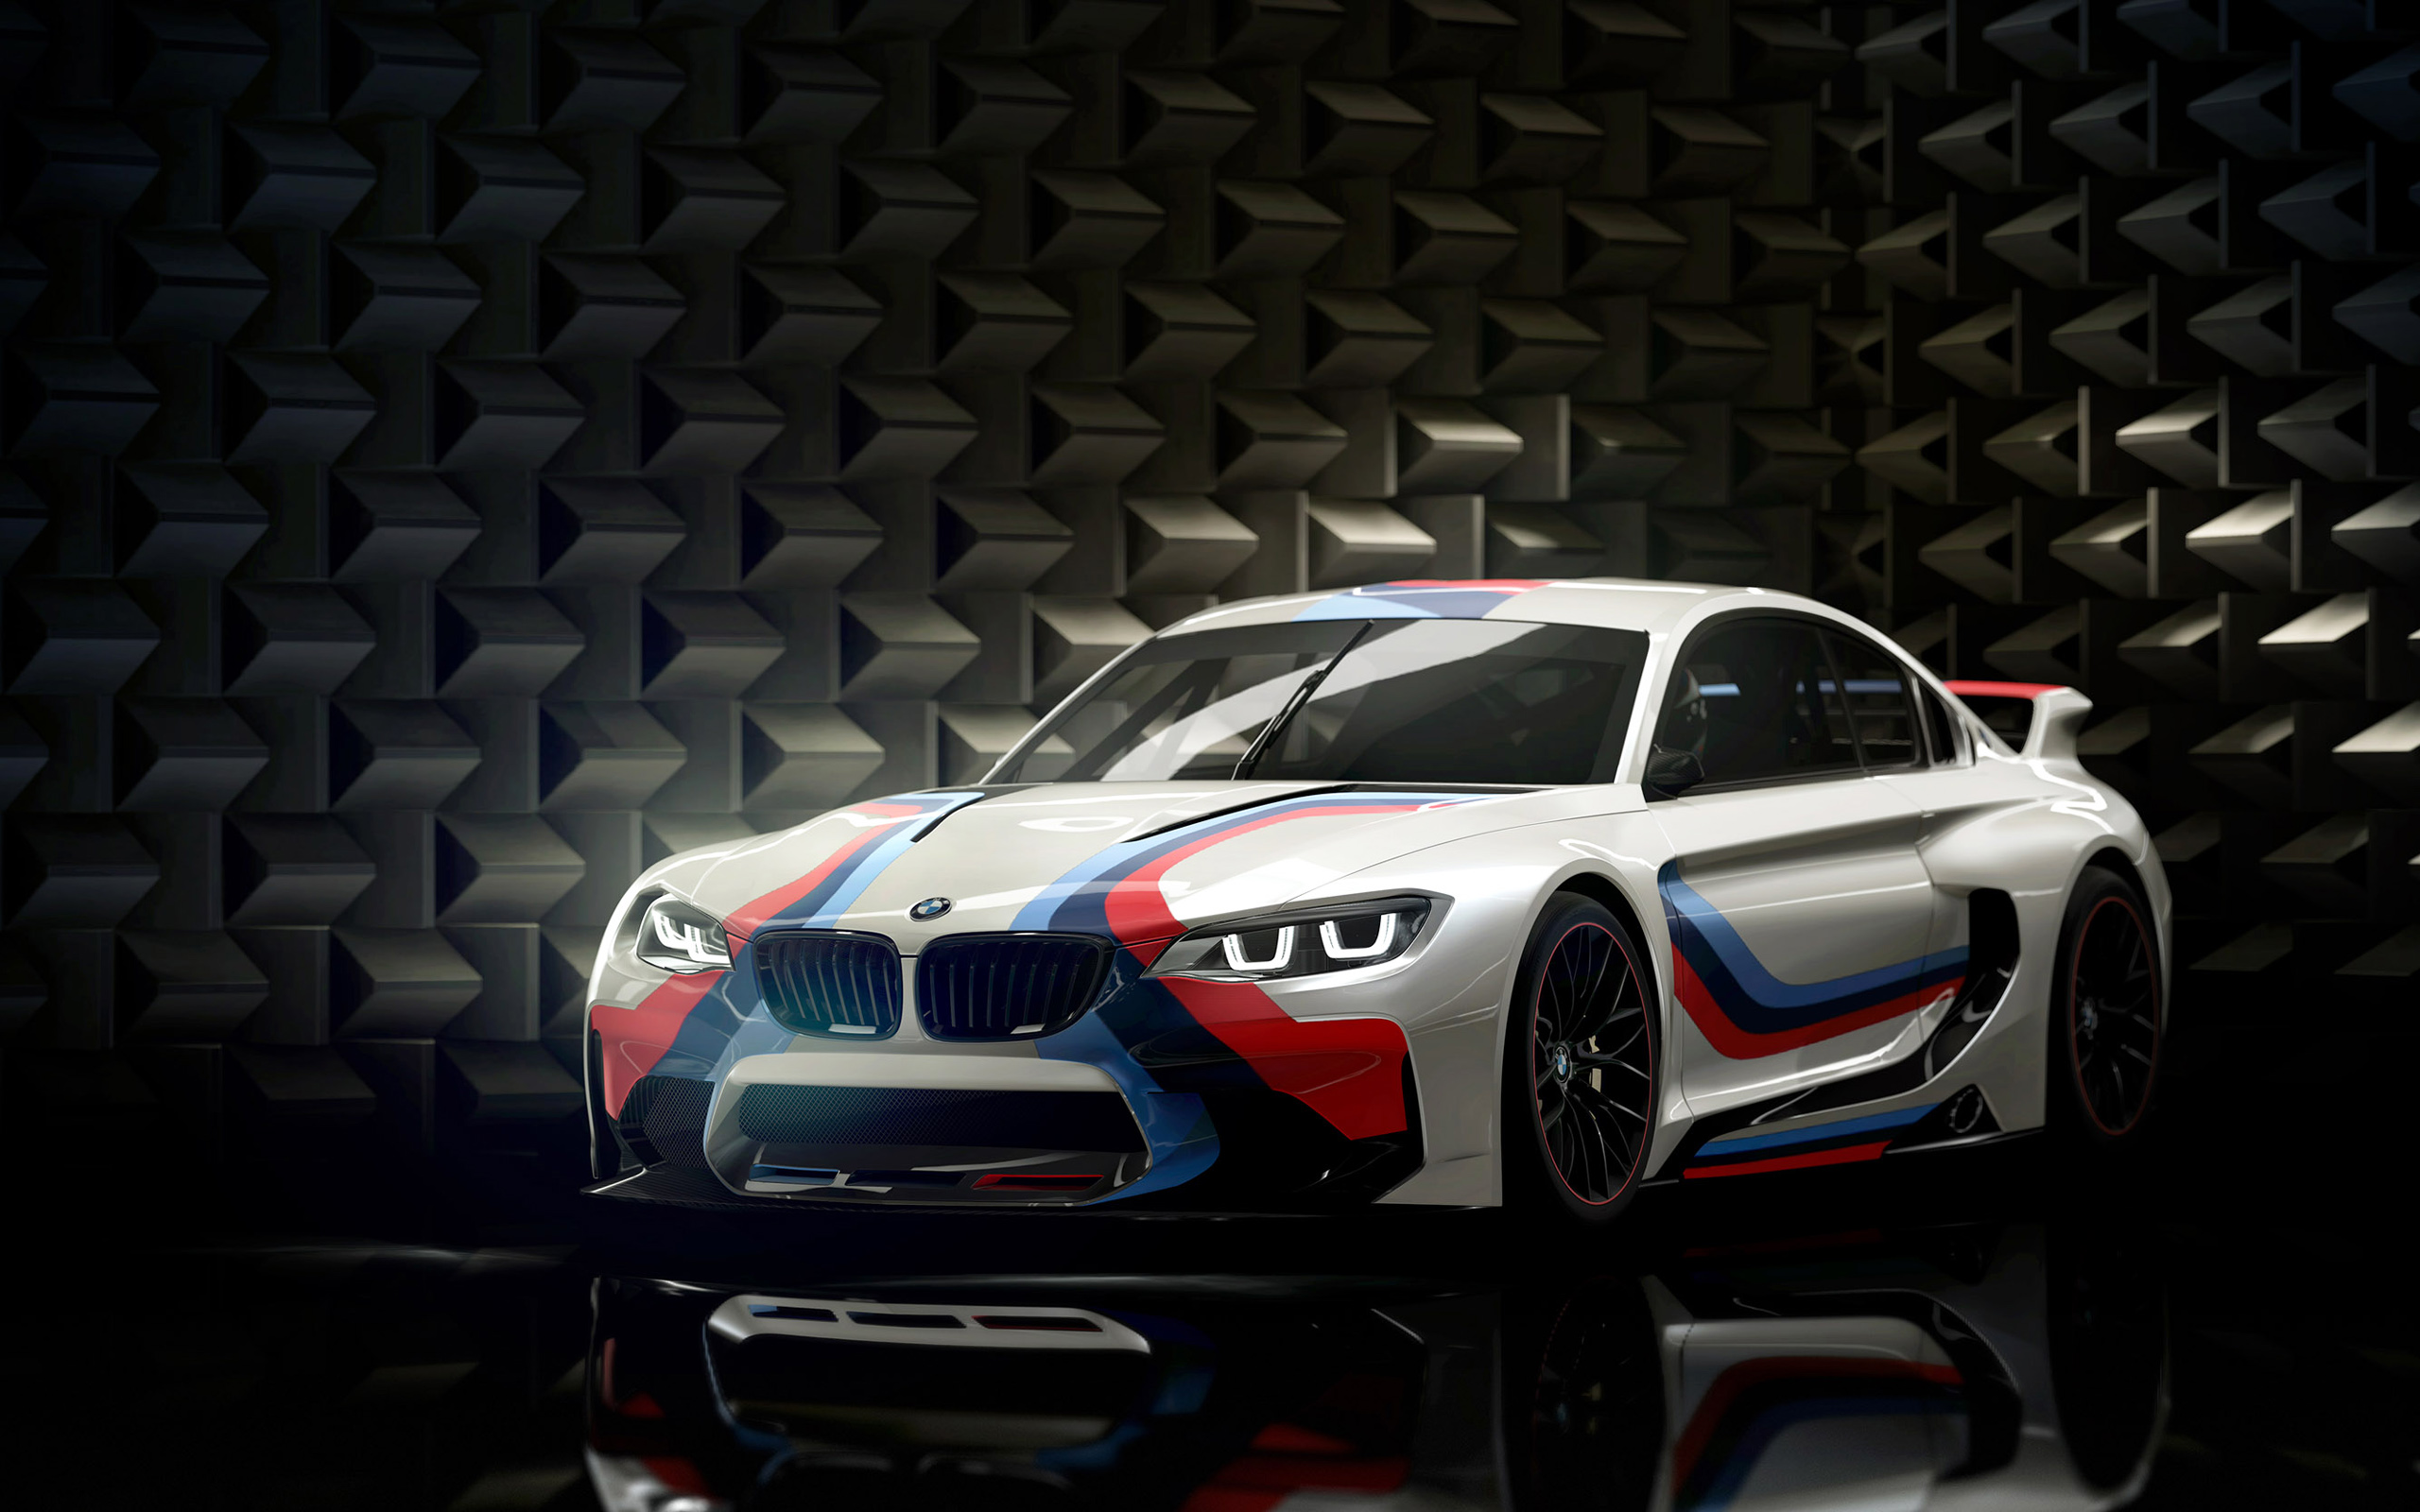 2014 BMW Vision Gran Turismo Wallpapers HD Wallpapers 2560x1600